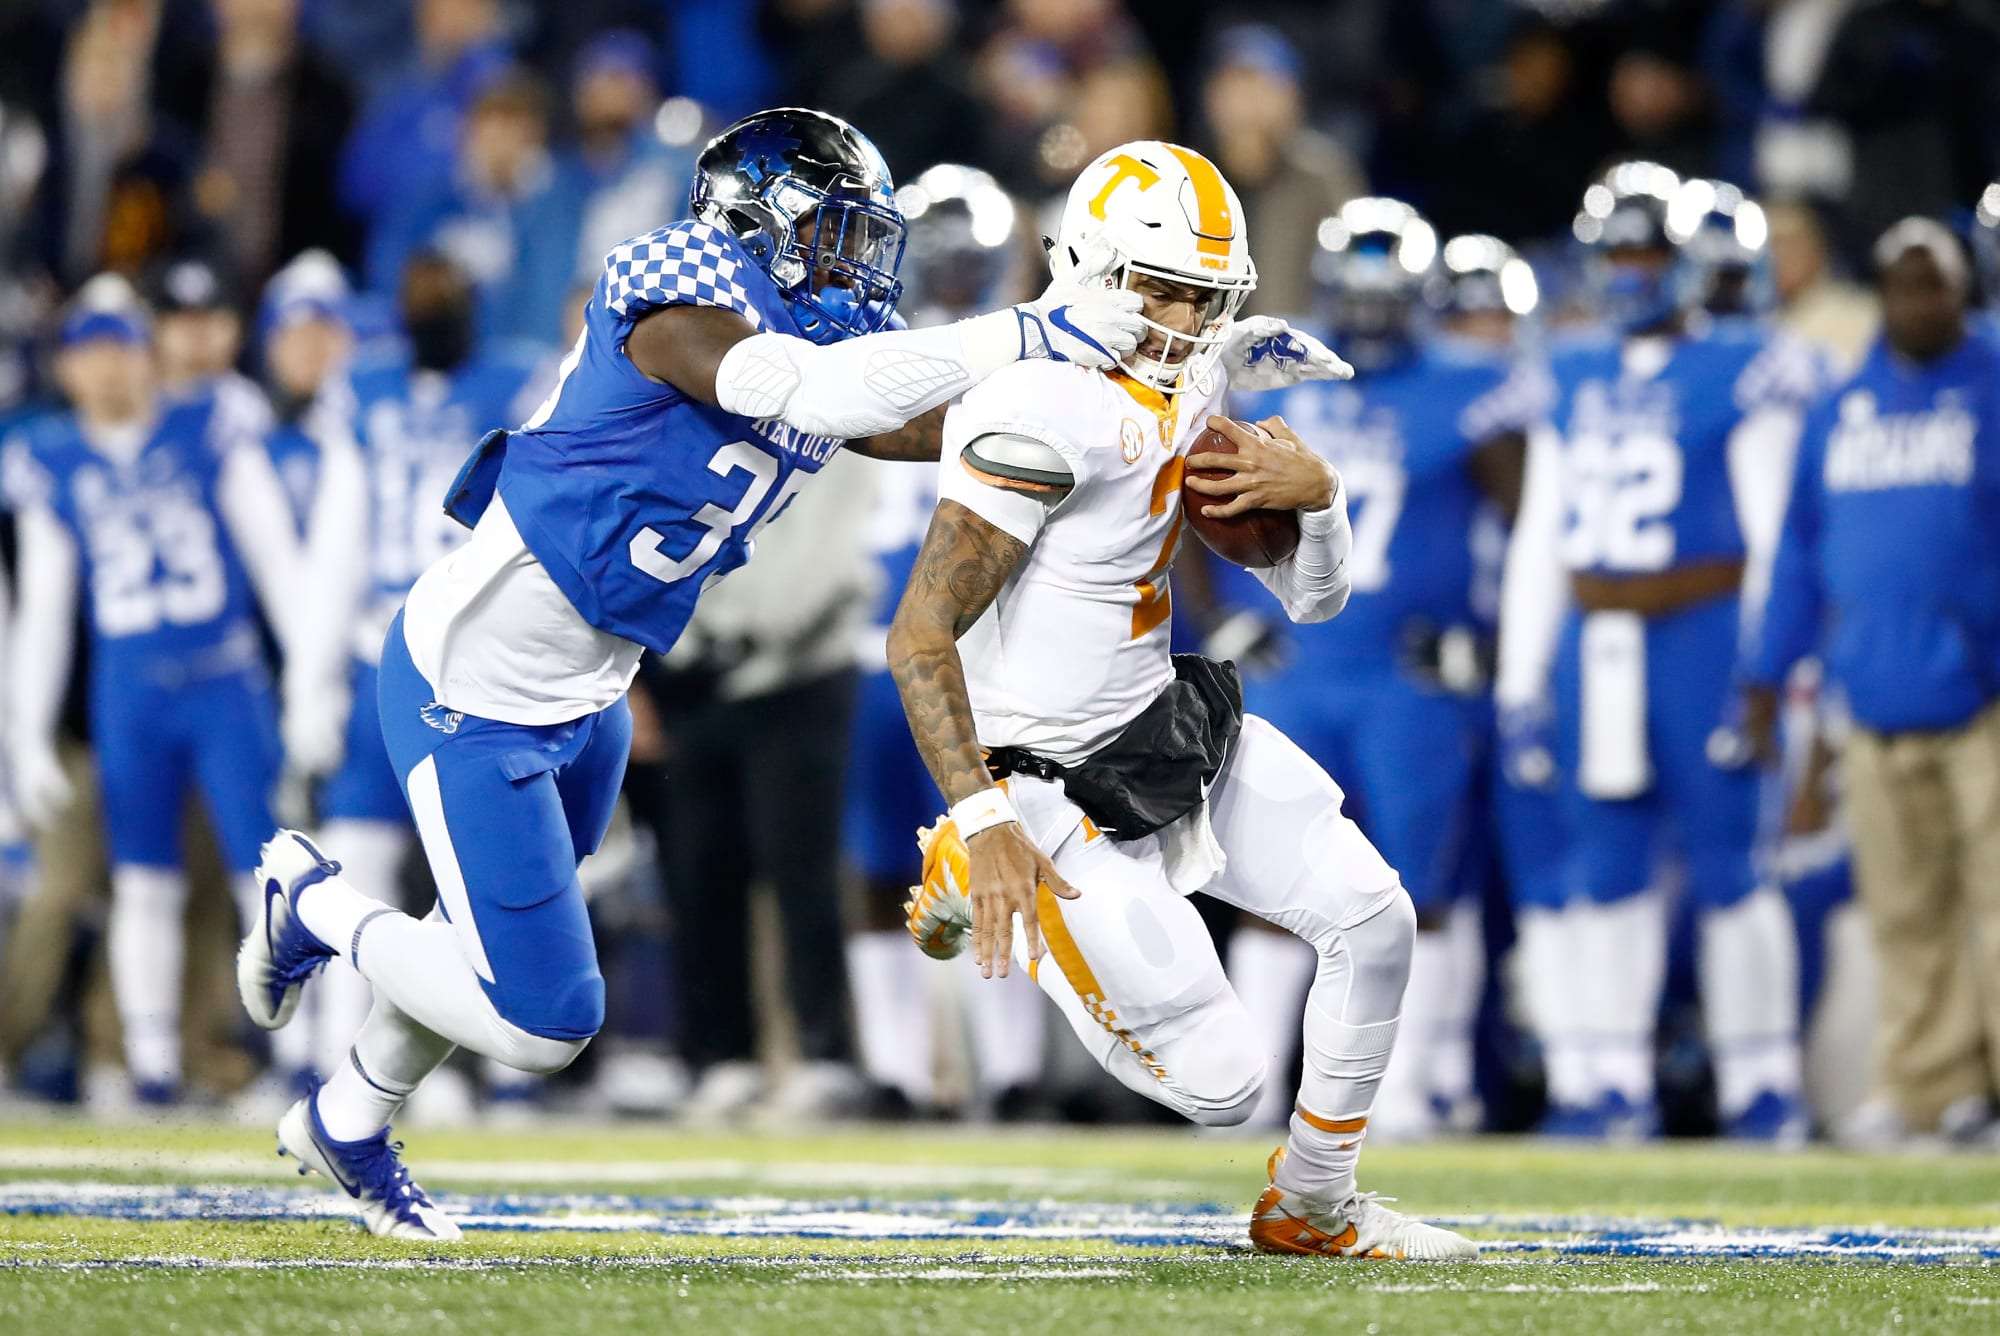 Tennessee football: 5 takeaways from Vols' 29-26 loss to ...